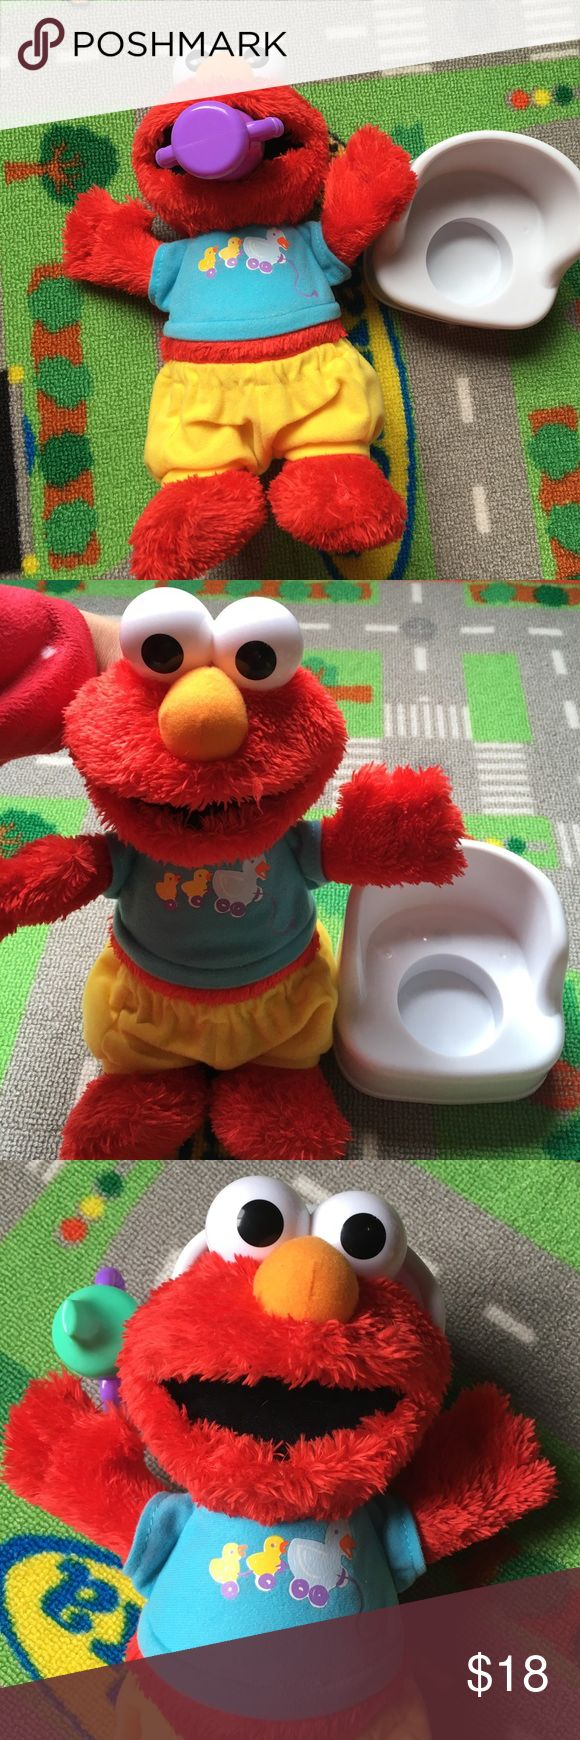 💕Elmo Potty time💕 Never used, been sitting in my son's closet.Features : Help Elmo go to the potty *Give Elmo a drink, lower his pants and sit him on the potty *When Elmo uses the potty in time, he sings a reward song to celebrate *When Elmo has an accident, he sings an accident song 💕 Sesame Street Other